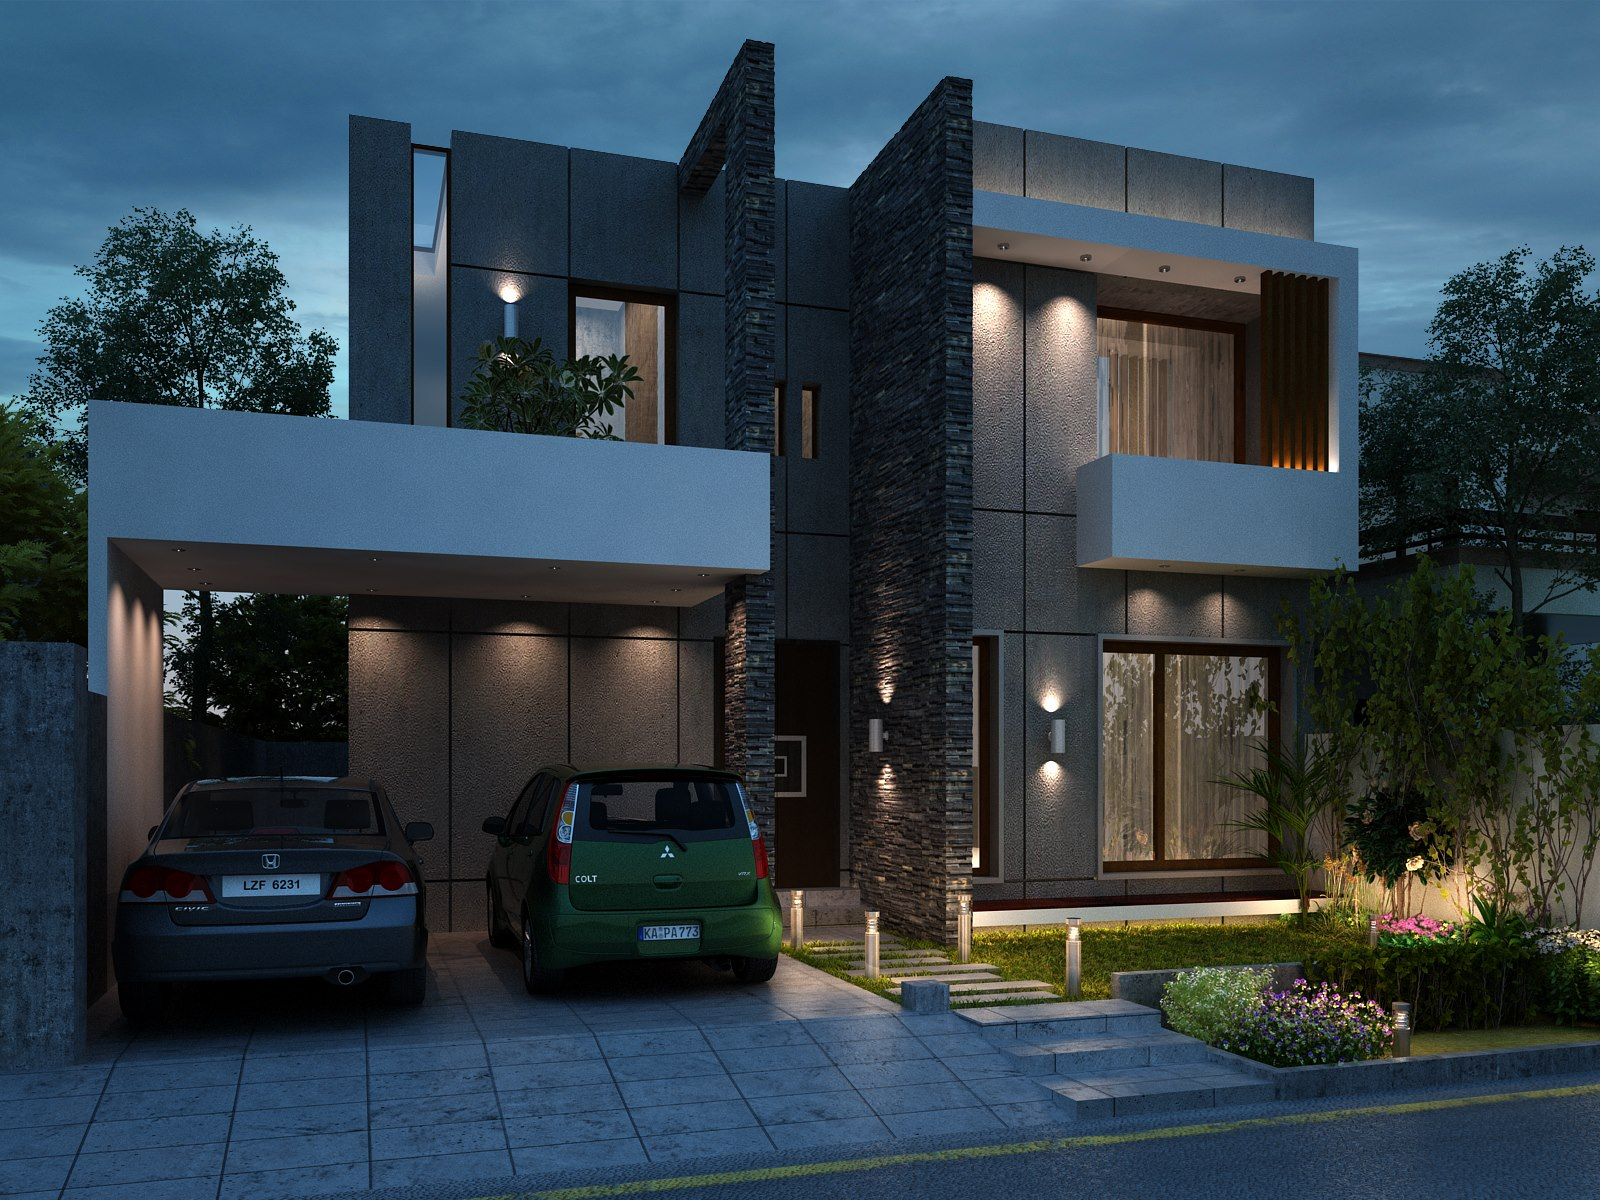 5 Marla Front Elevation Designs : House front elevation design joy studio gallery best